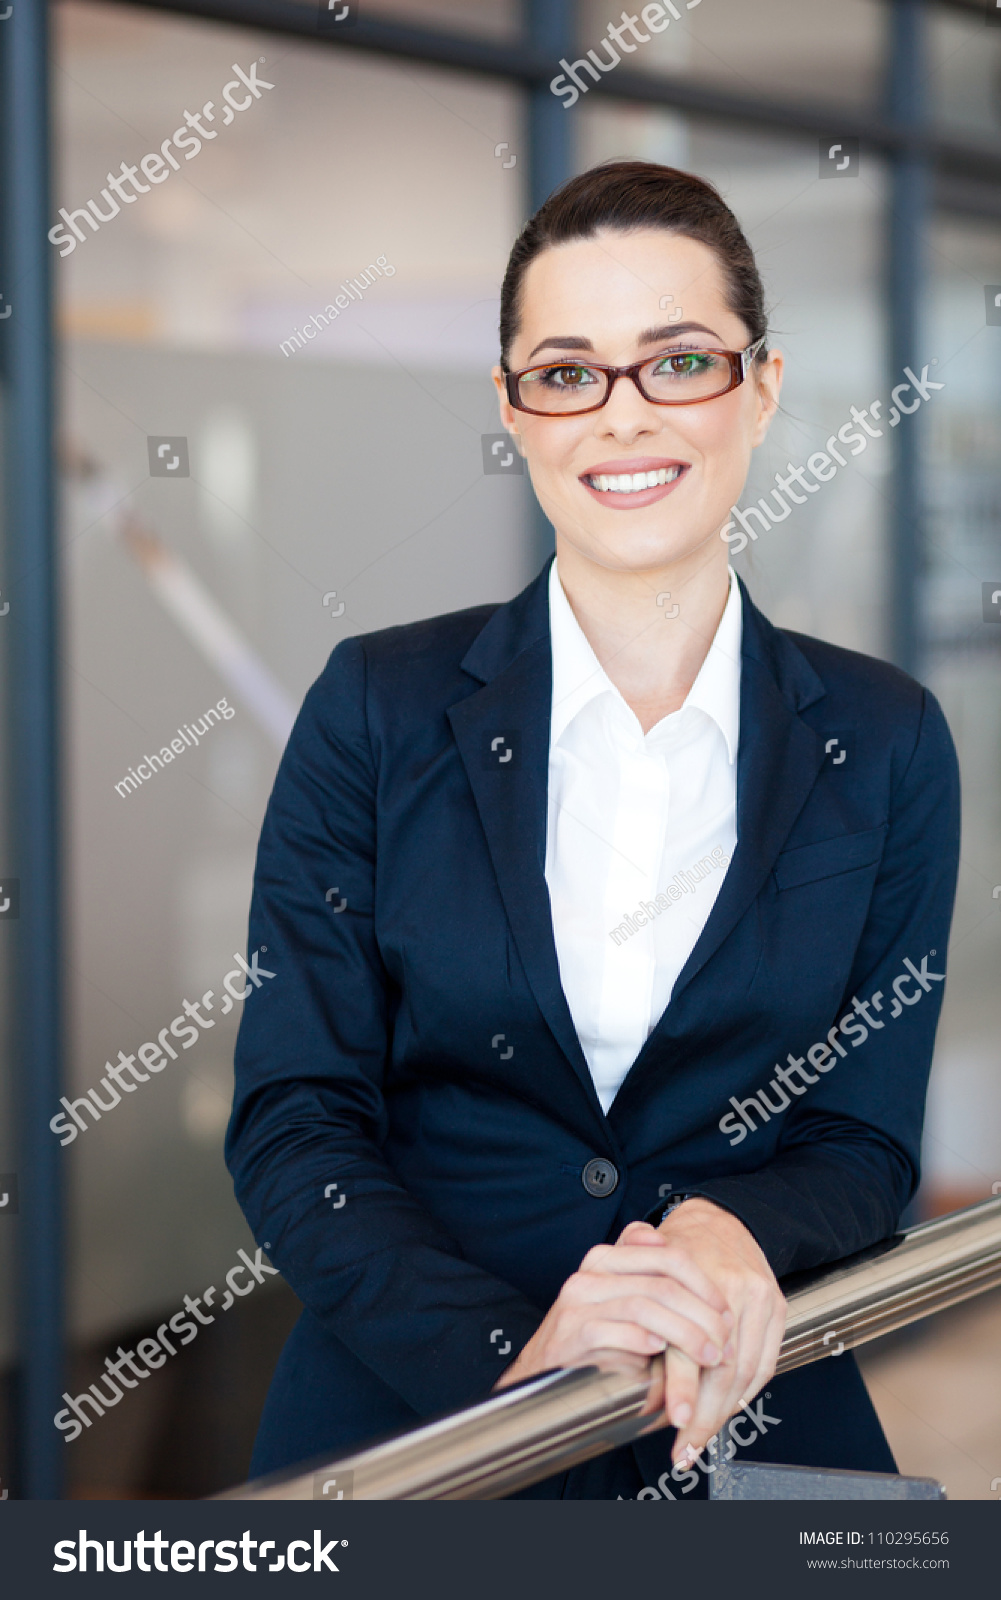 Beautiful young businesswoman portrait office stock photo 110295656 shutterstock - Office portrait photography ...